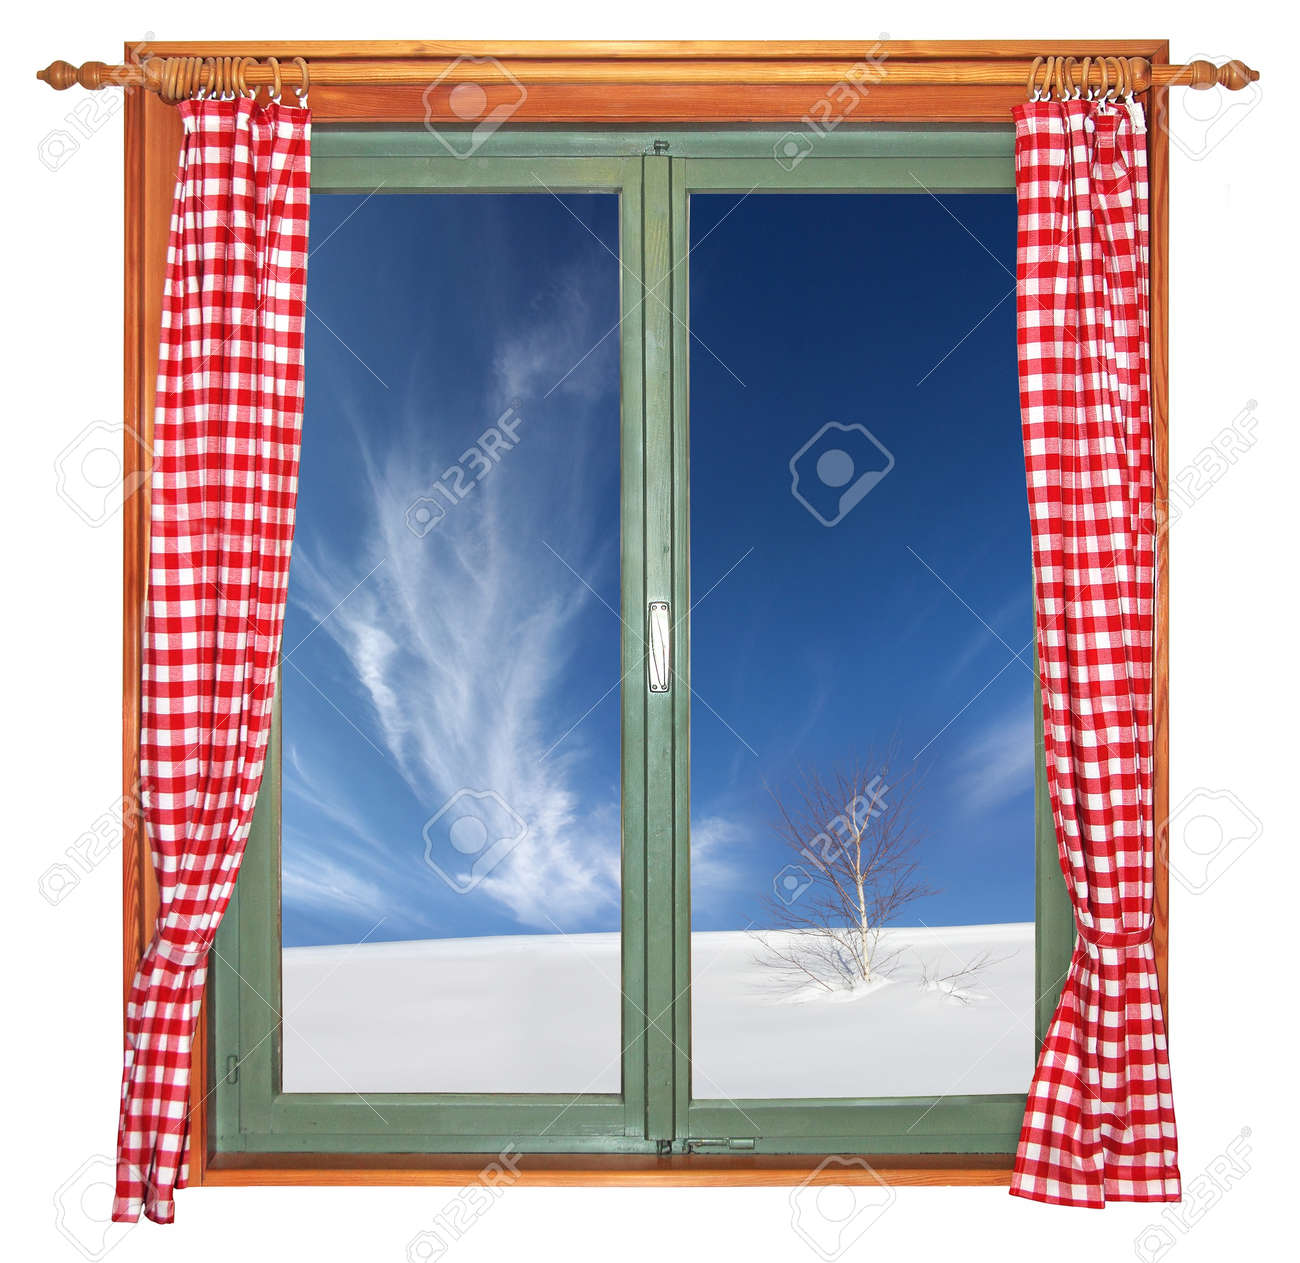 Green wooden window with a view a tree in the snow, isolated on white background Stock Photo - 17670373